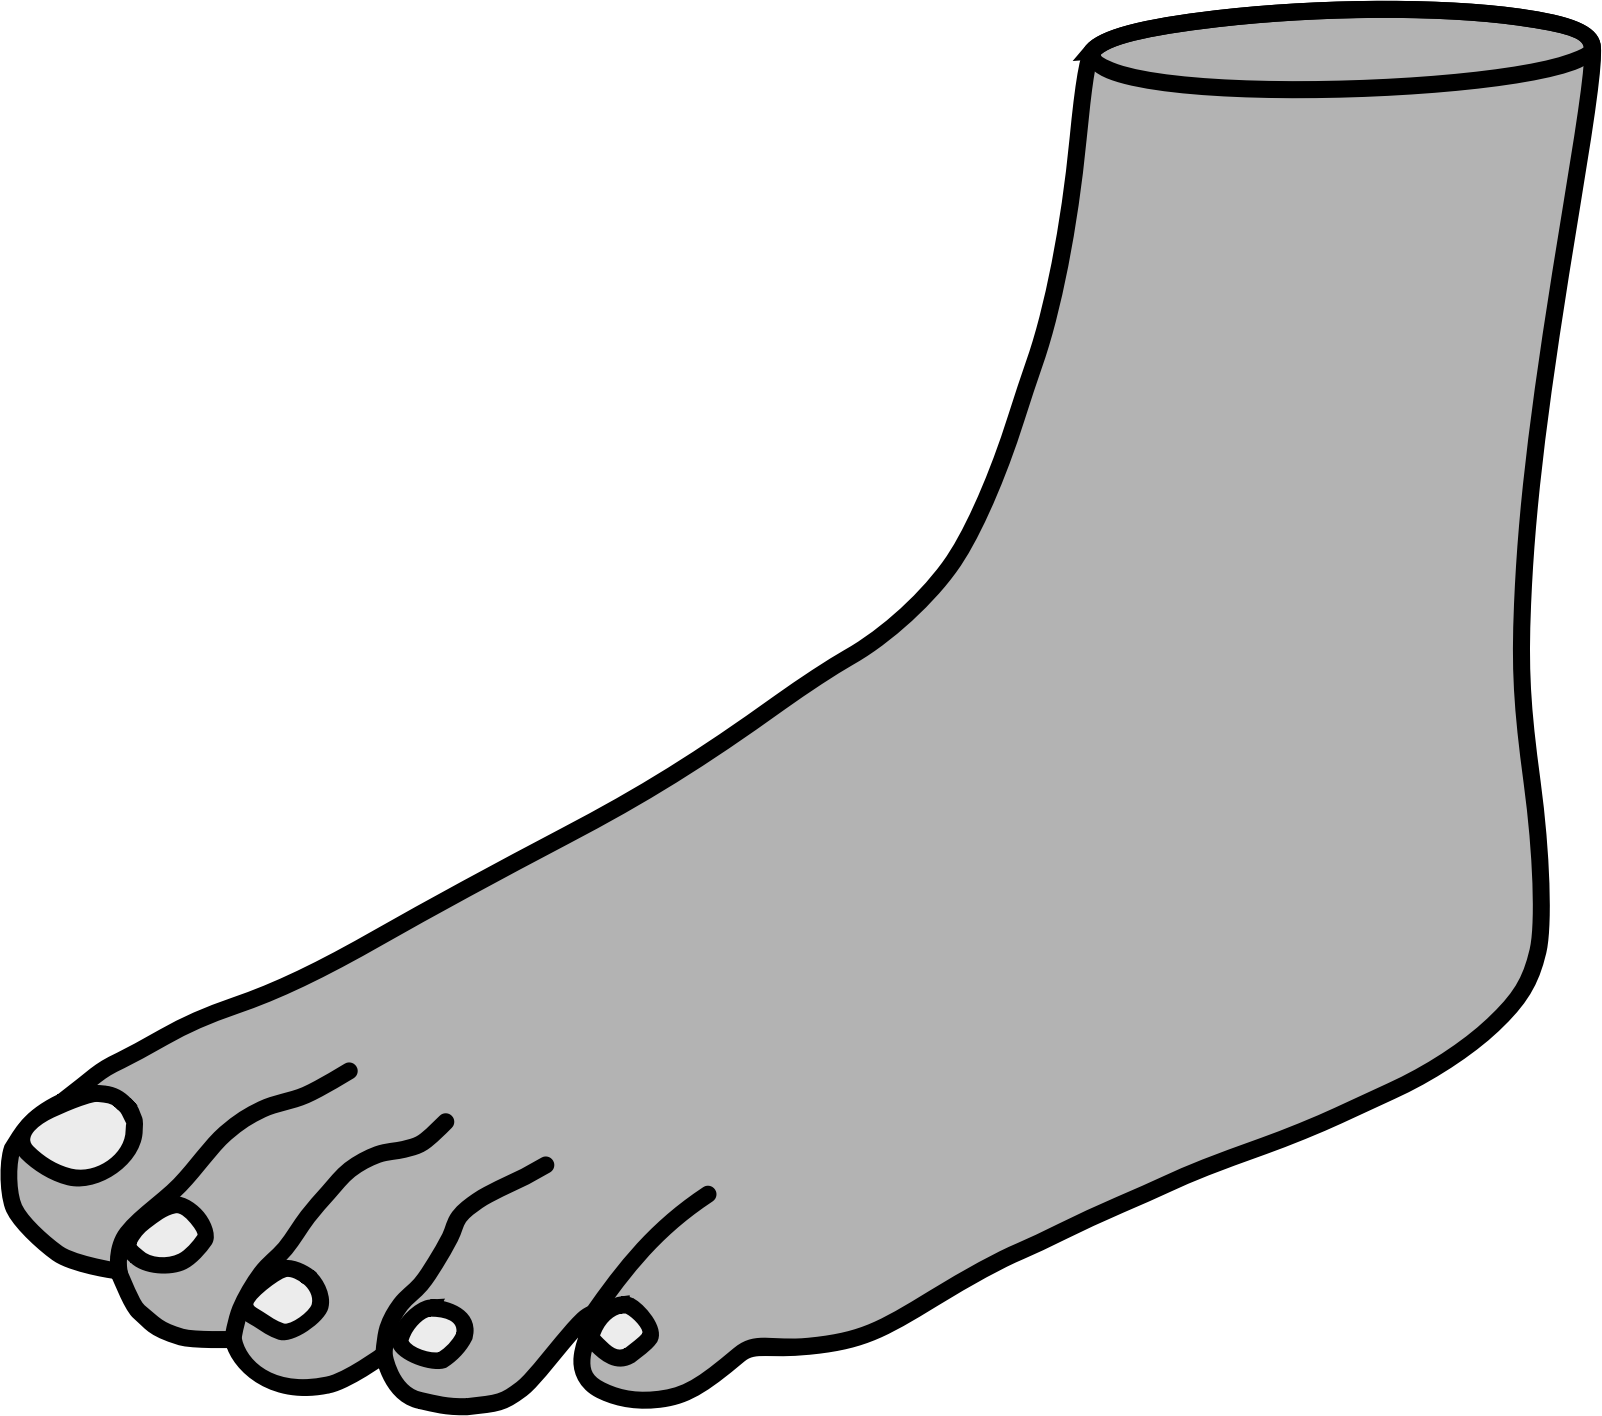 1602x1416 Feet Clipart Foot Black And White